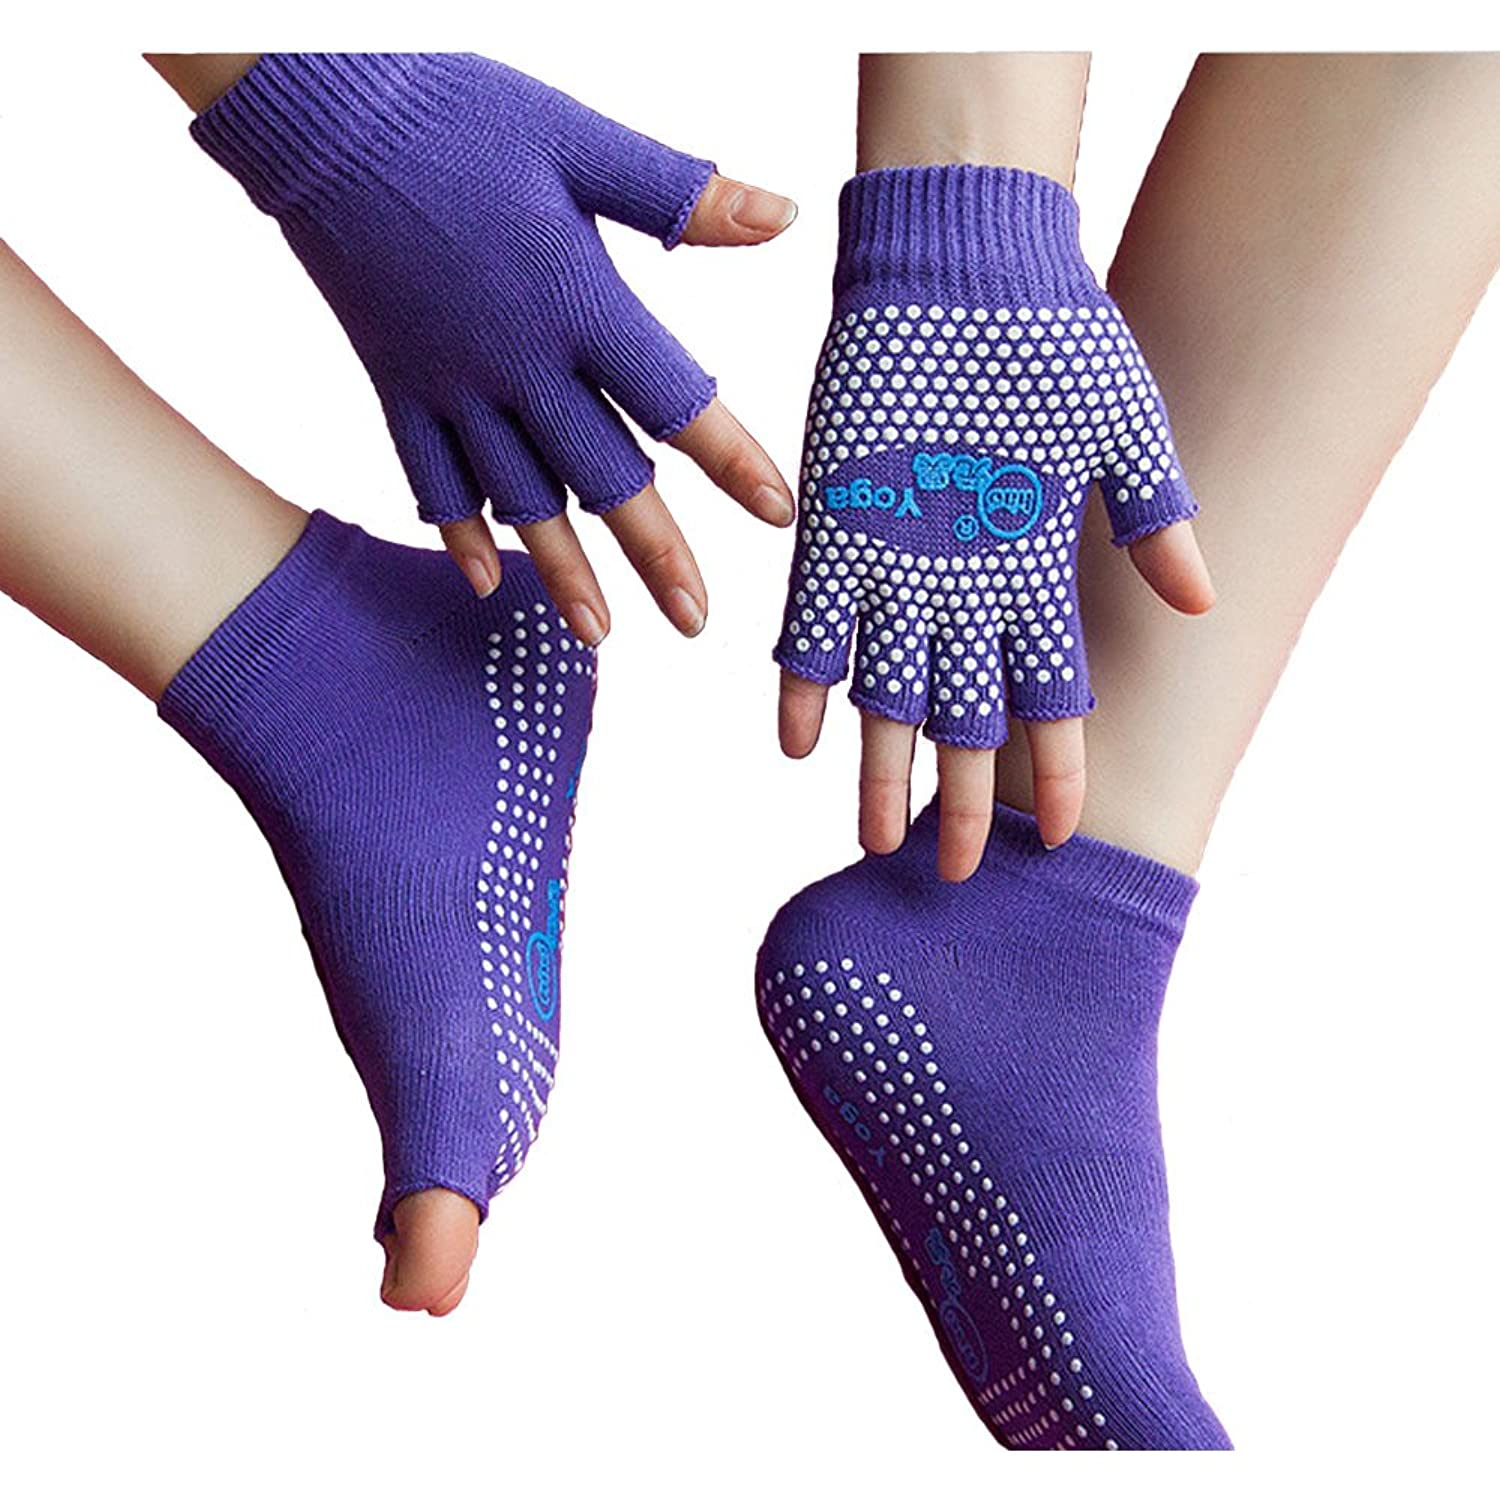 Jenny Shop Toeless Yoga Socks and Gloves Set, Non Slip Grip with Silicone Dots